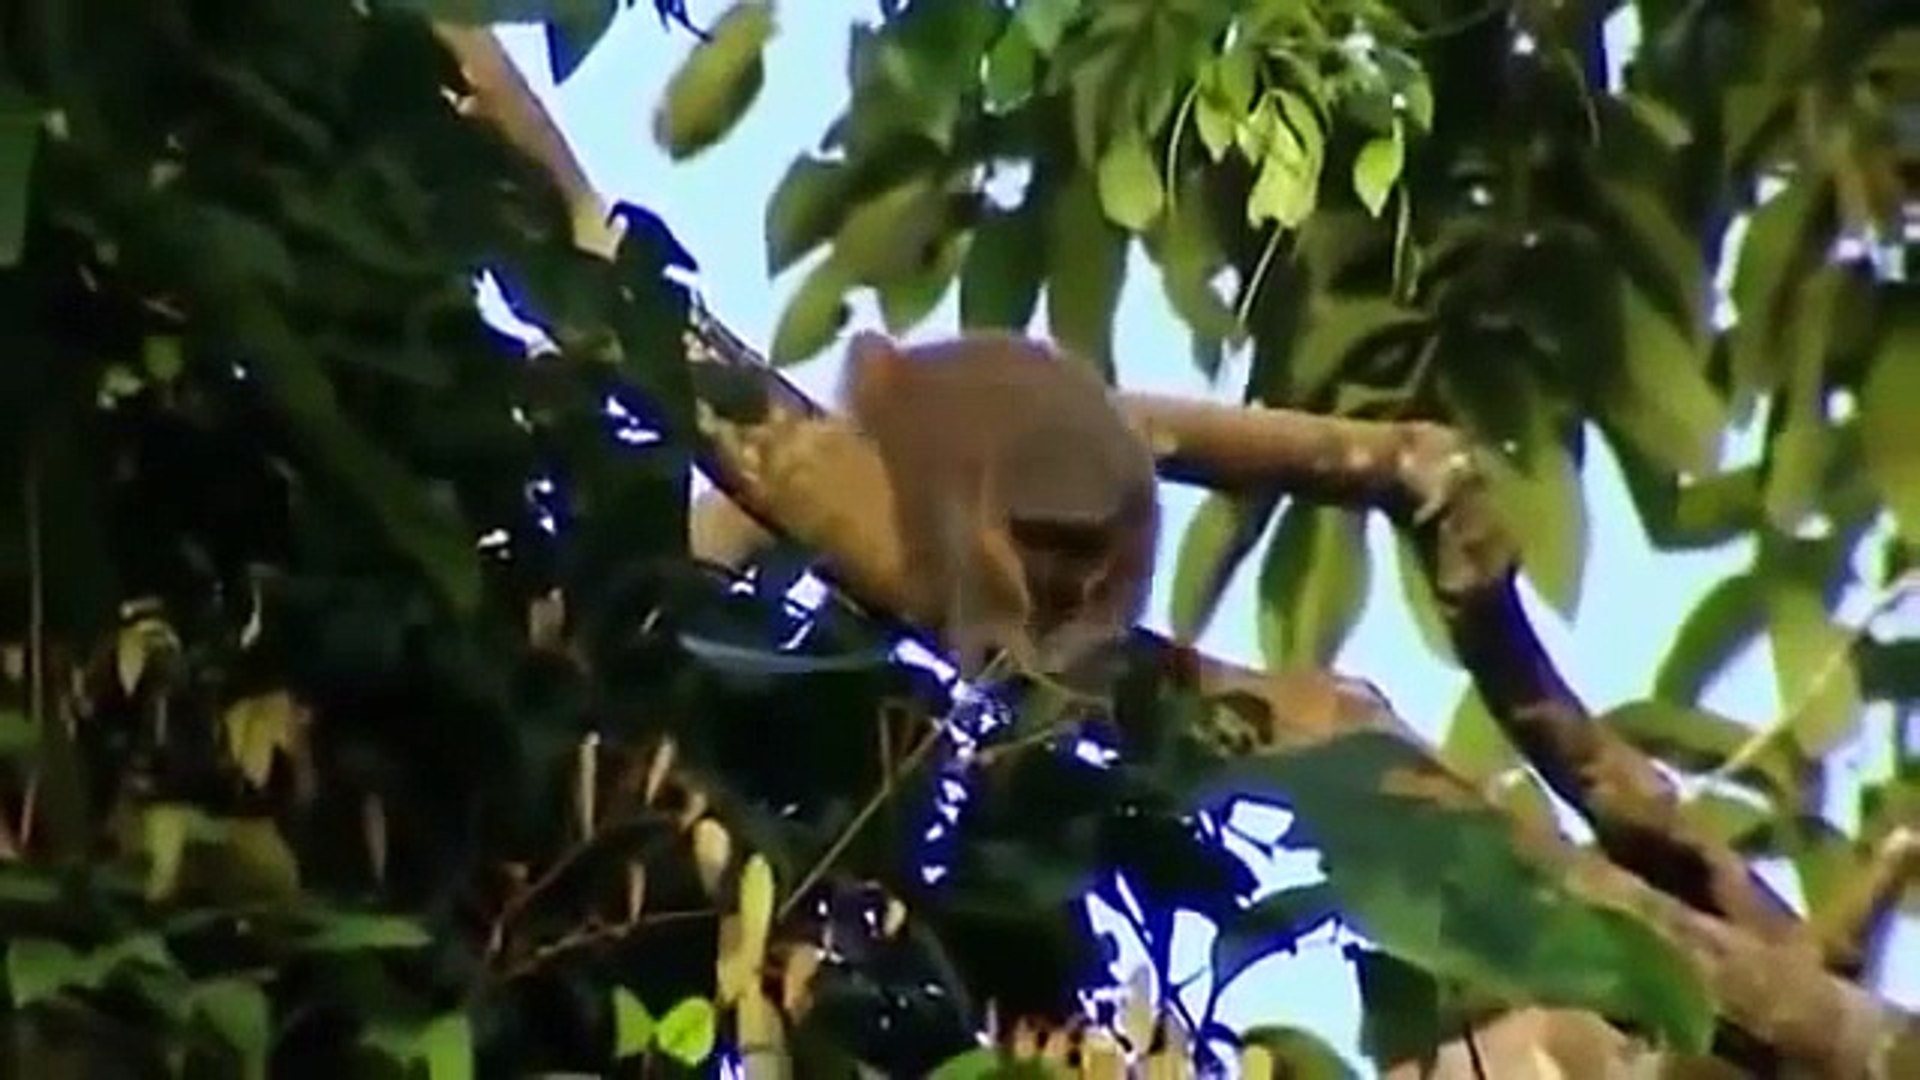 Monkey wildlife   Animals & Documentary Channel 2015   wildlife animal Geographic #007